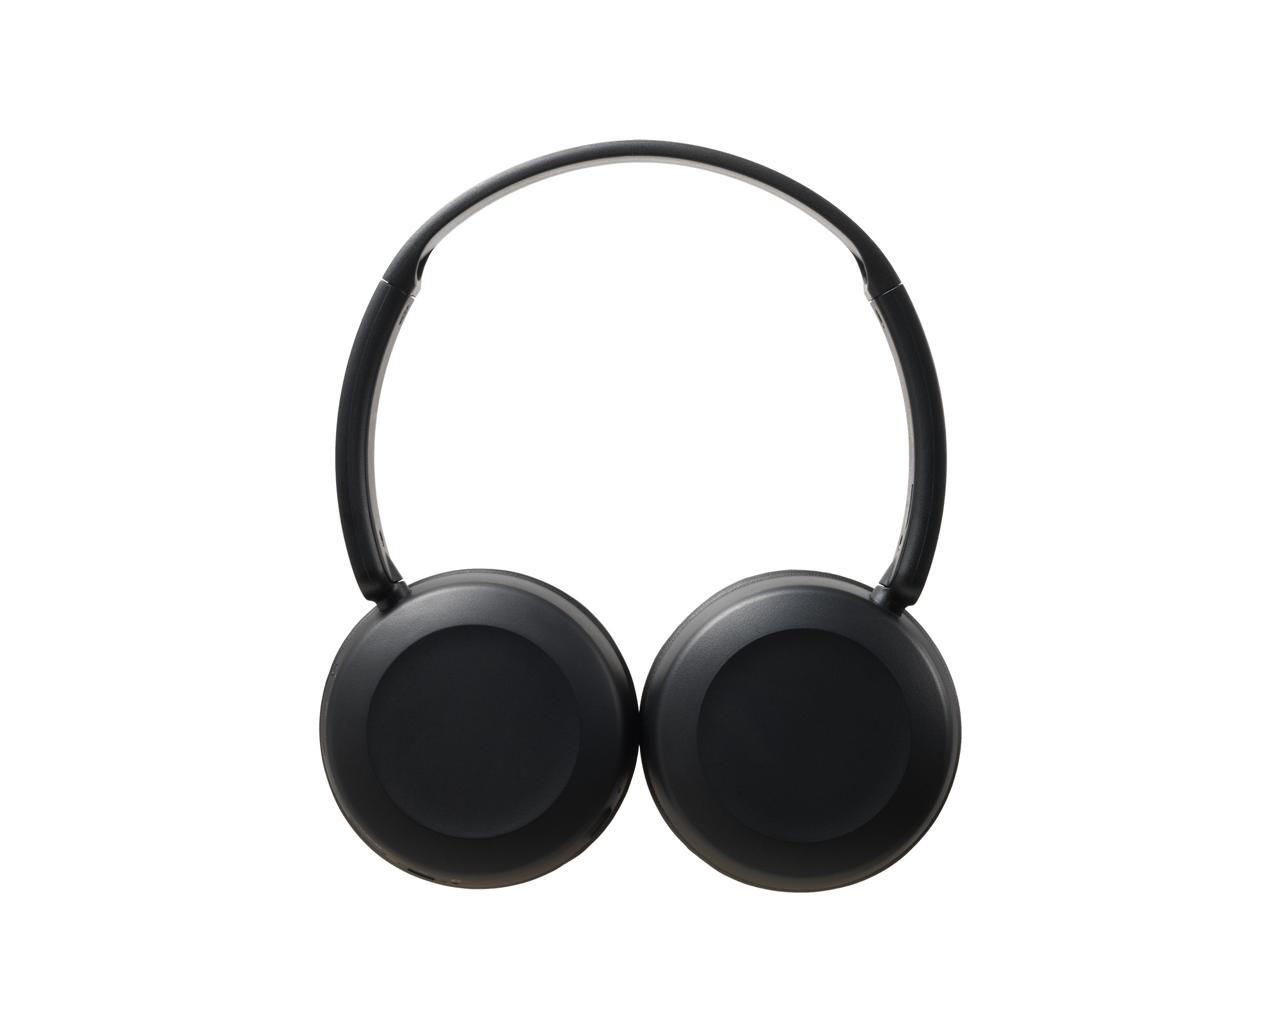 JVC HA-S31BT Bluetooth Headphones - Flat Folded View